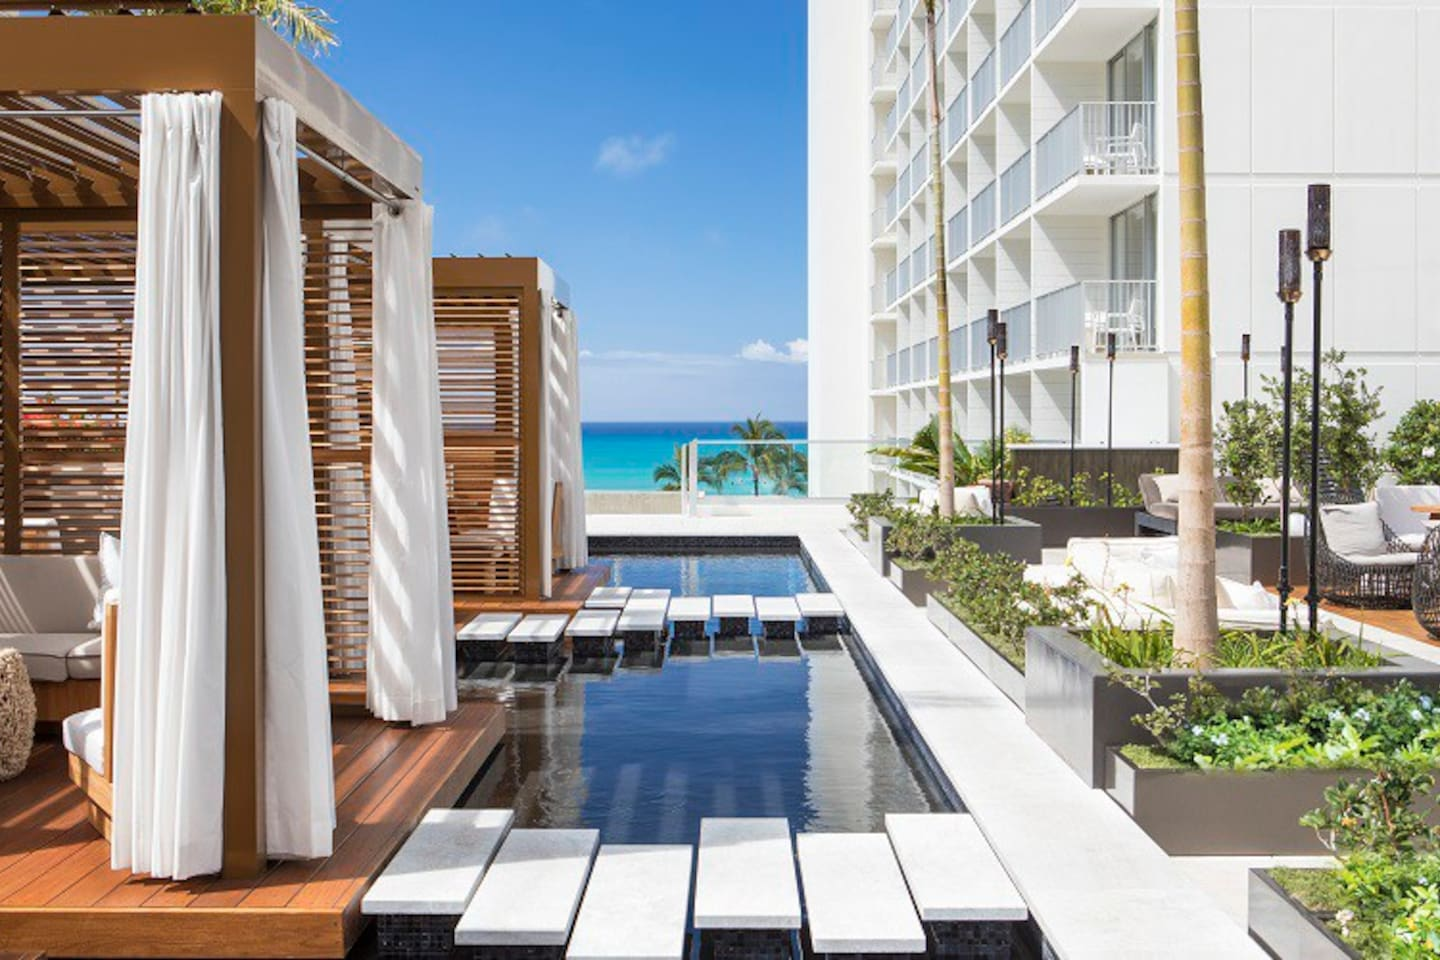 Swell pool deck and cabanas